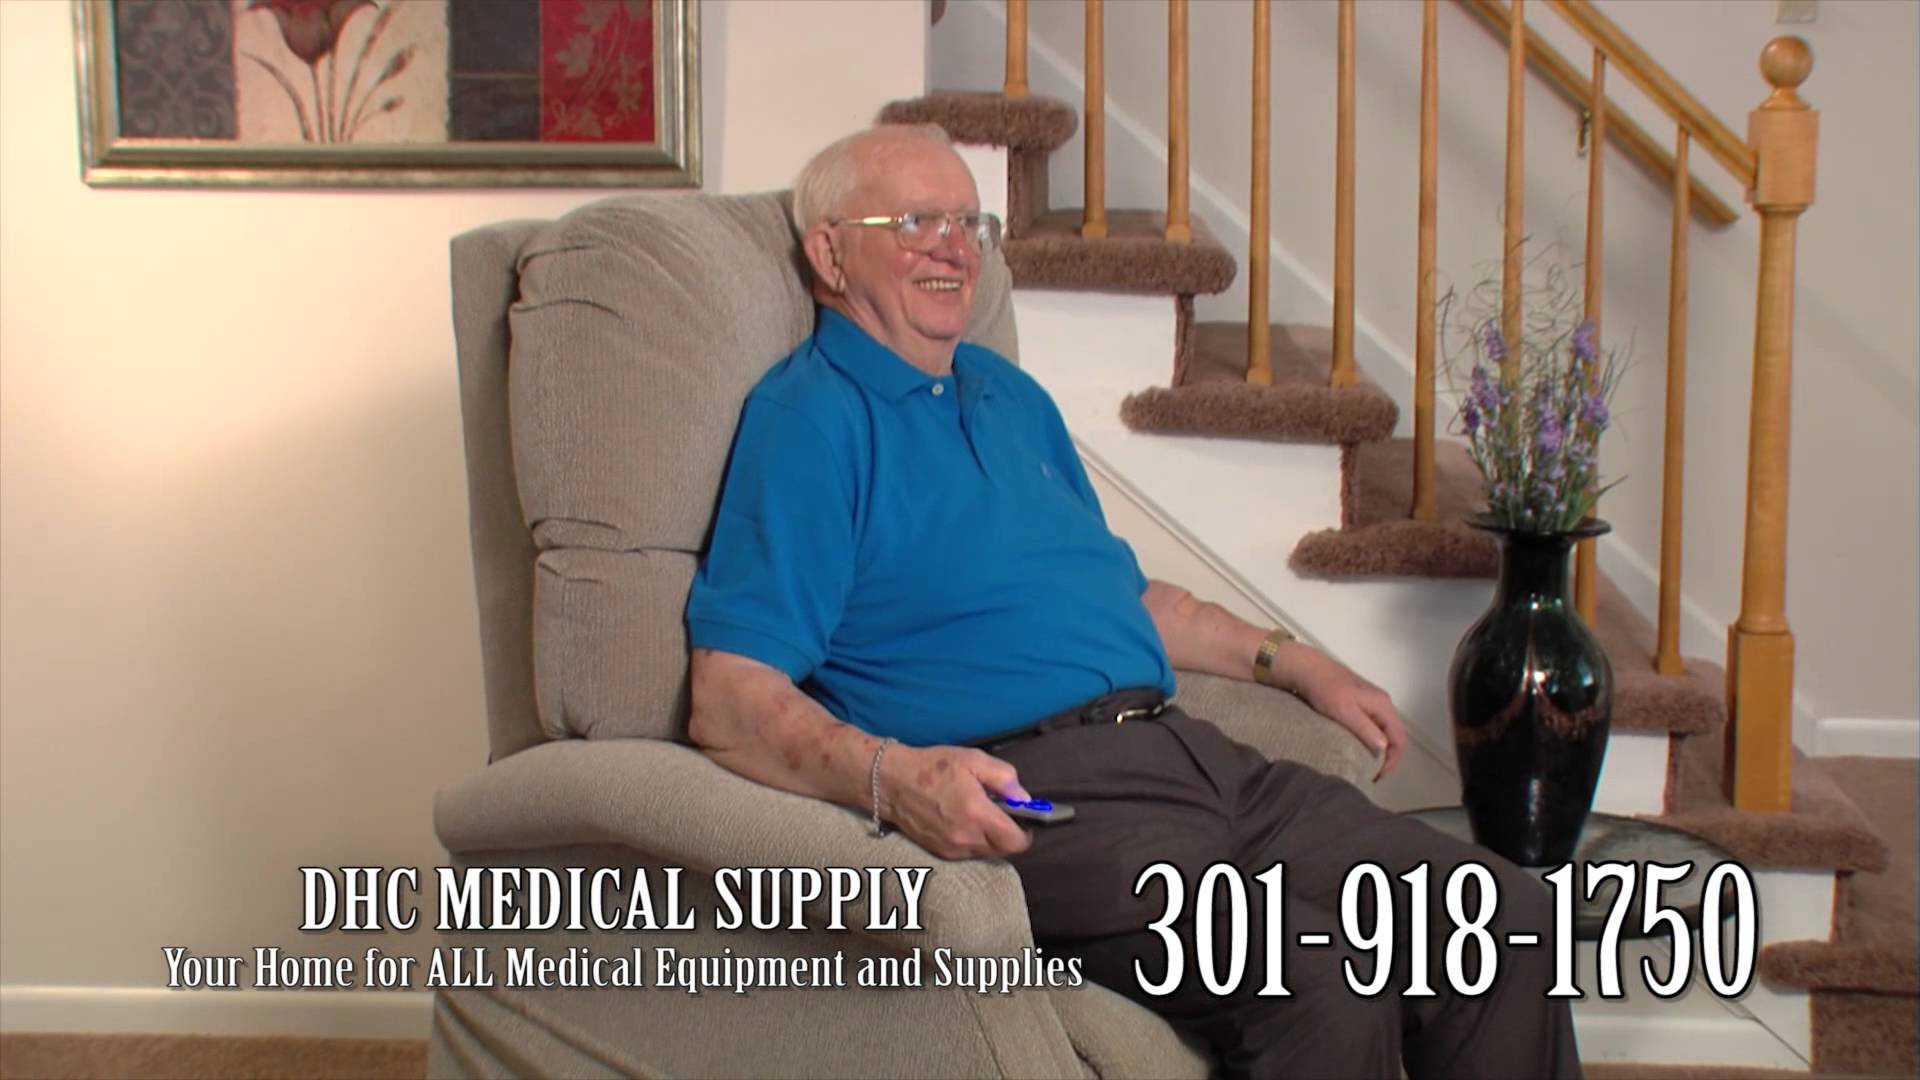 dhc medical supply lift chair